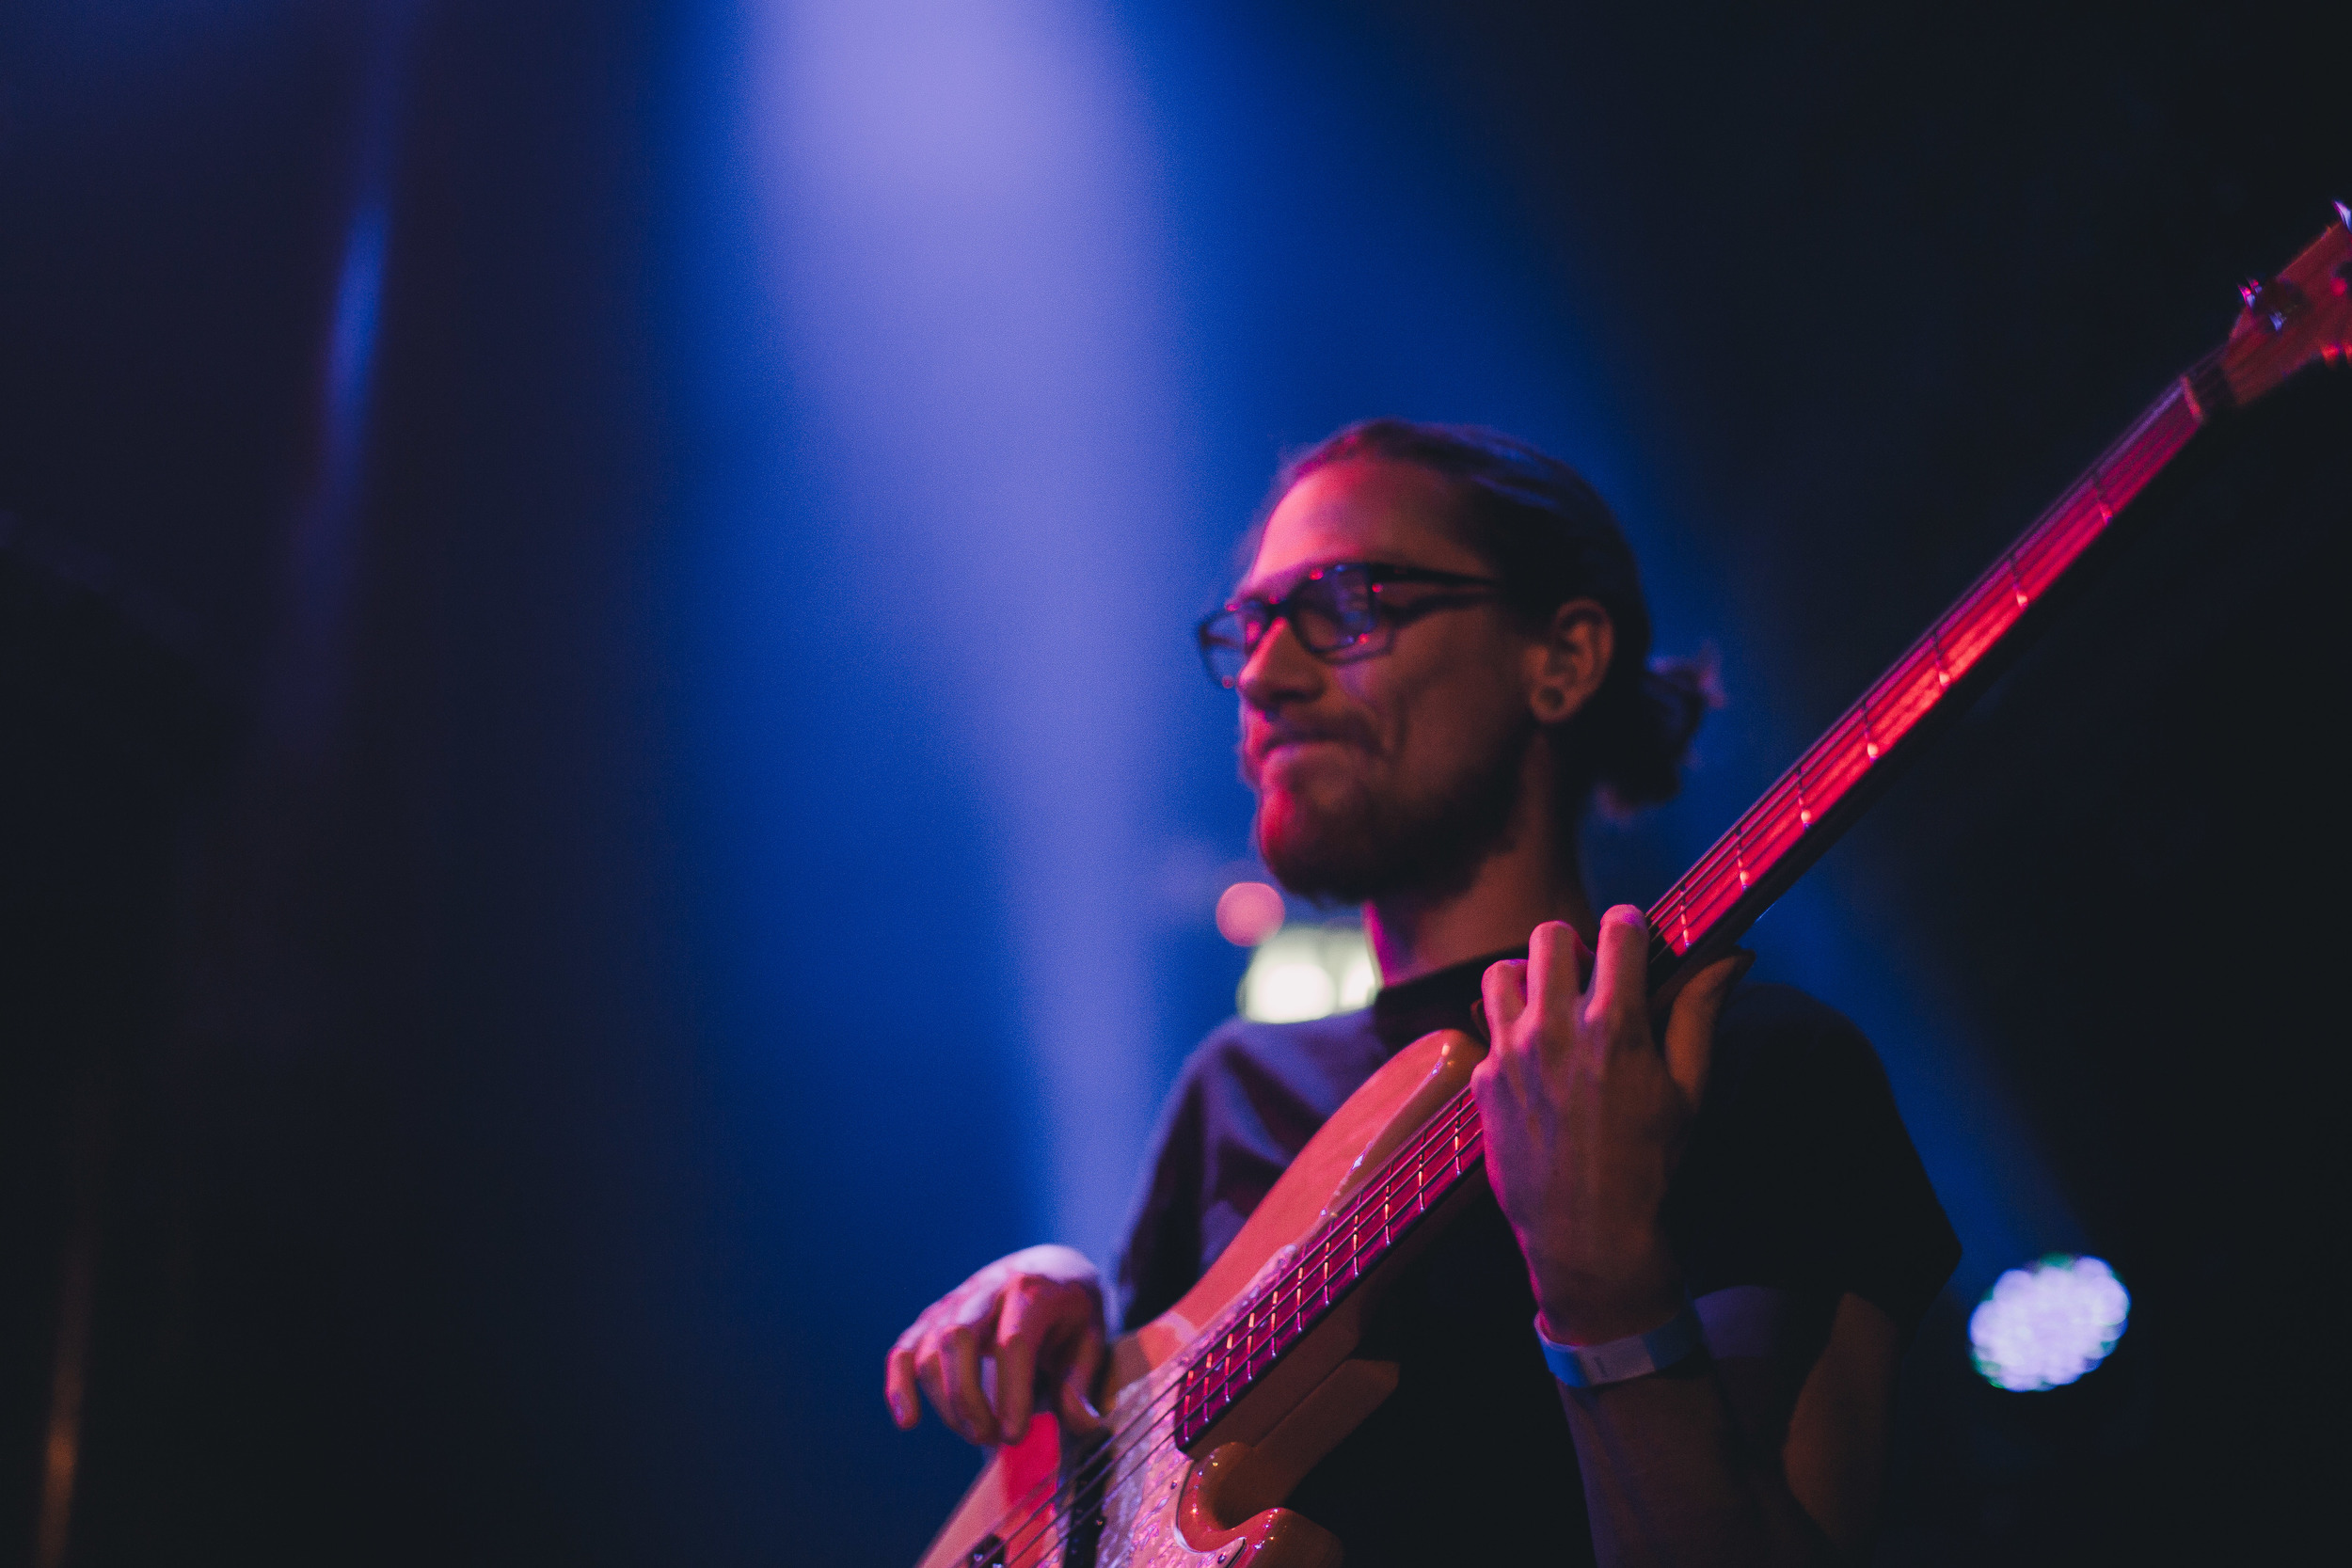 photos taken by   Mo Alcaraz  at Great American Music Hall